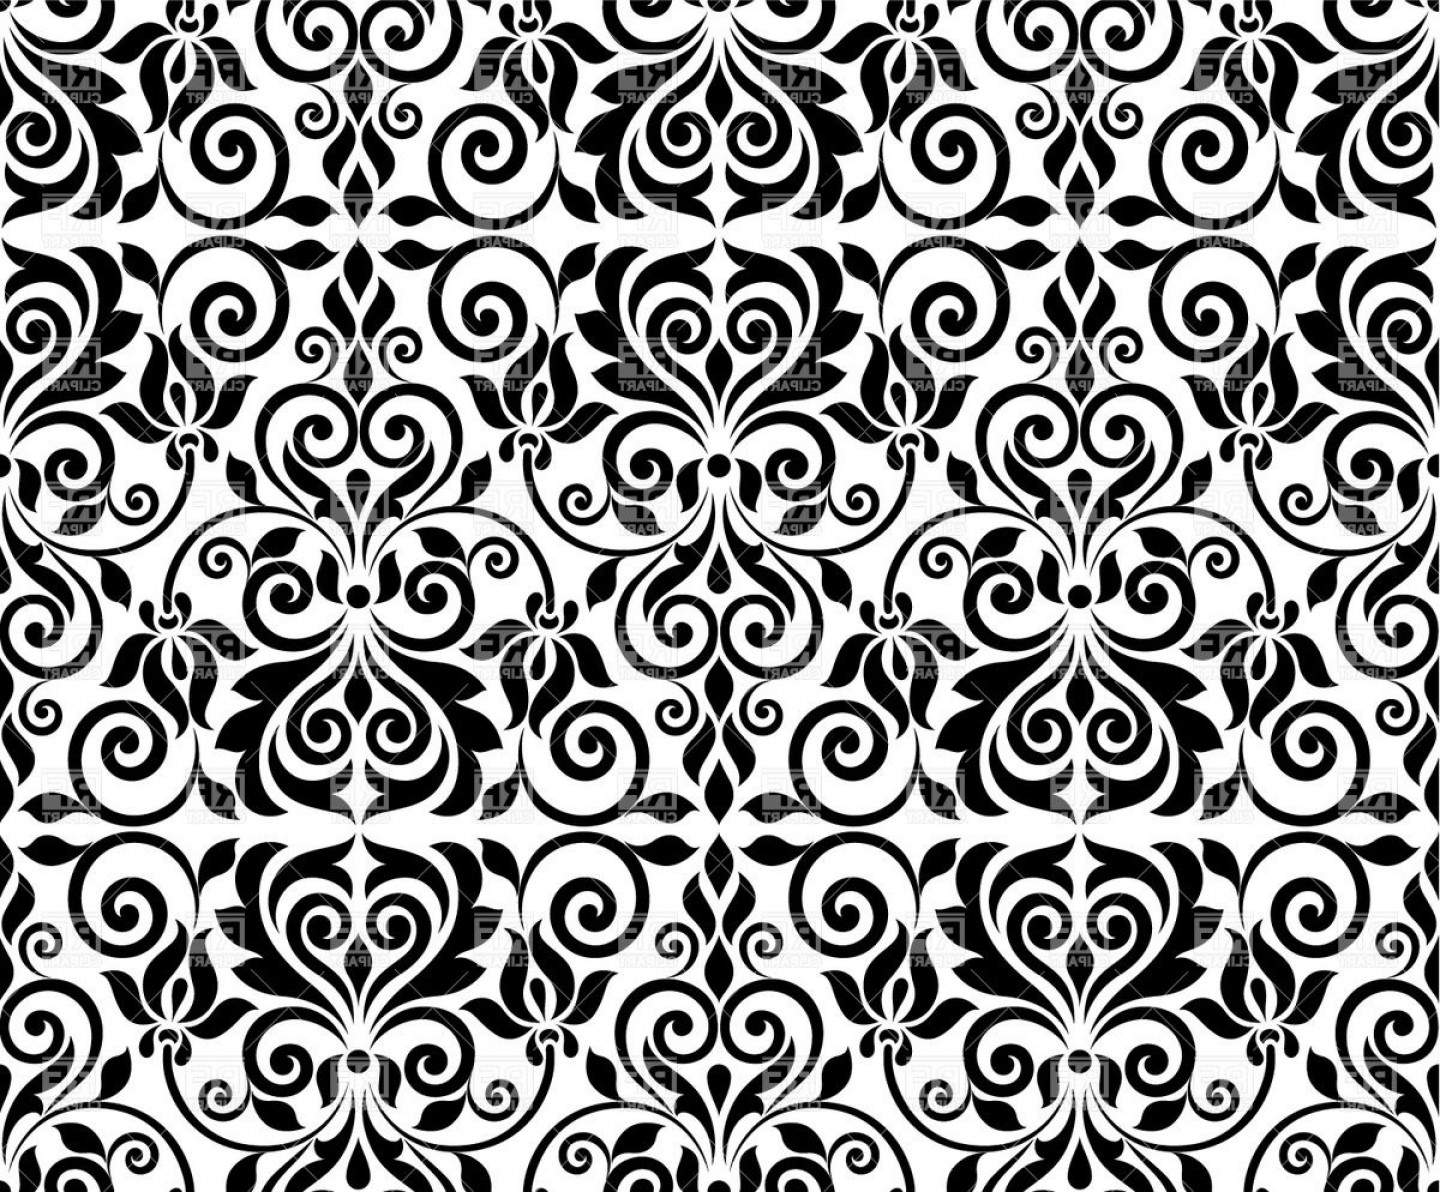 Free EPS Vector Art: Seamless Damask Background Ornamental Classic Pattern Vector Clipart